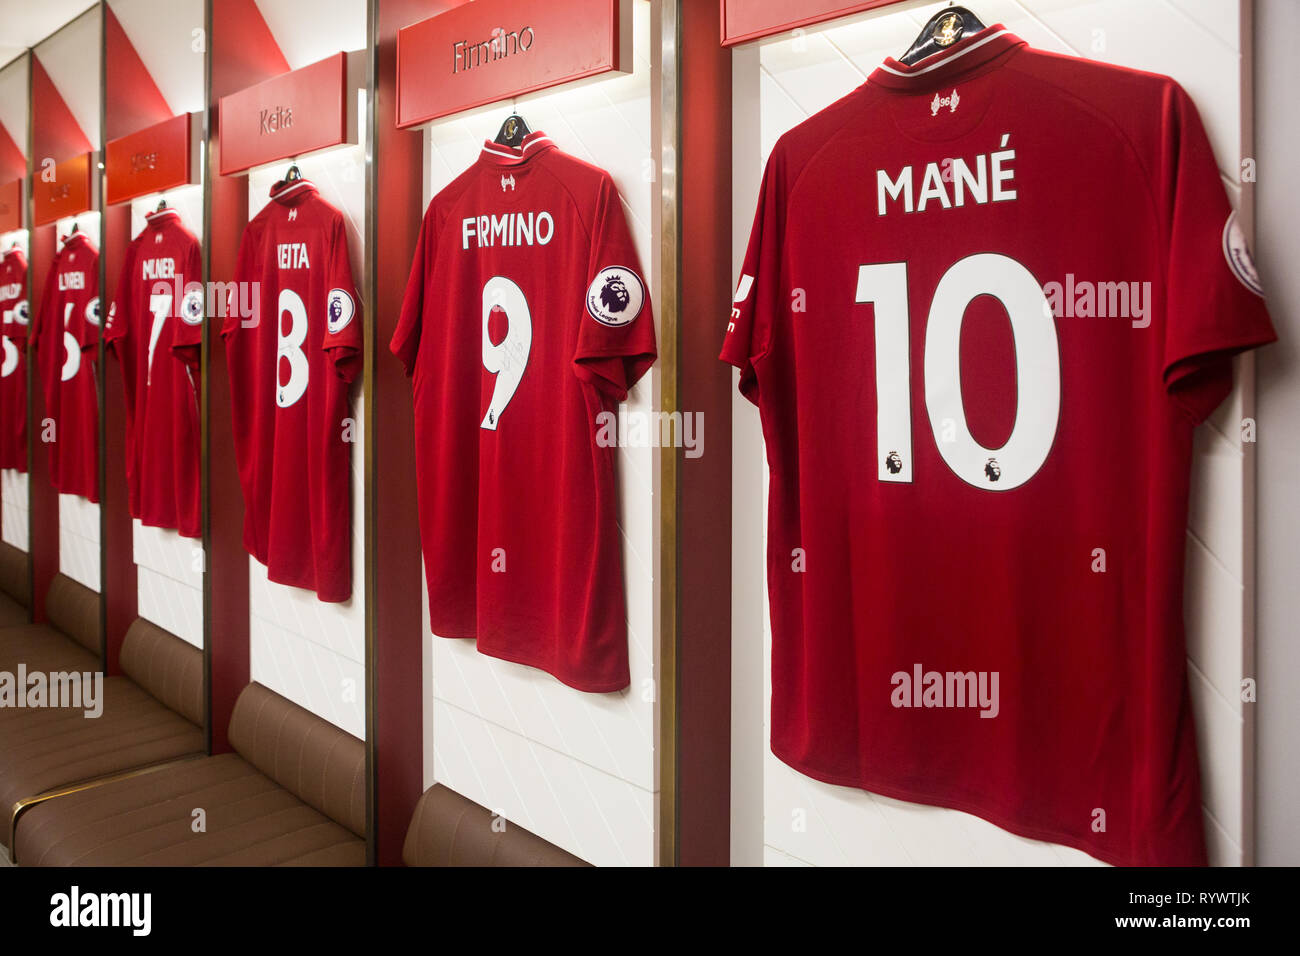 5d625f9904b 2018/19 season Premier League team squad players red kit shirts hanging in  home team